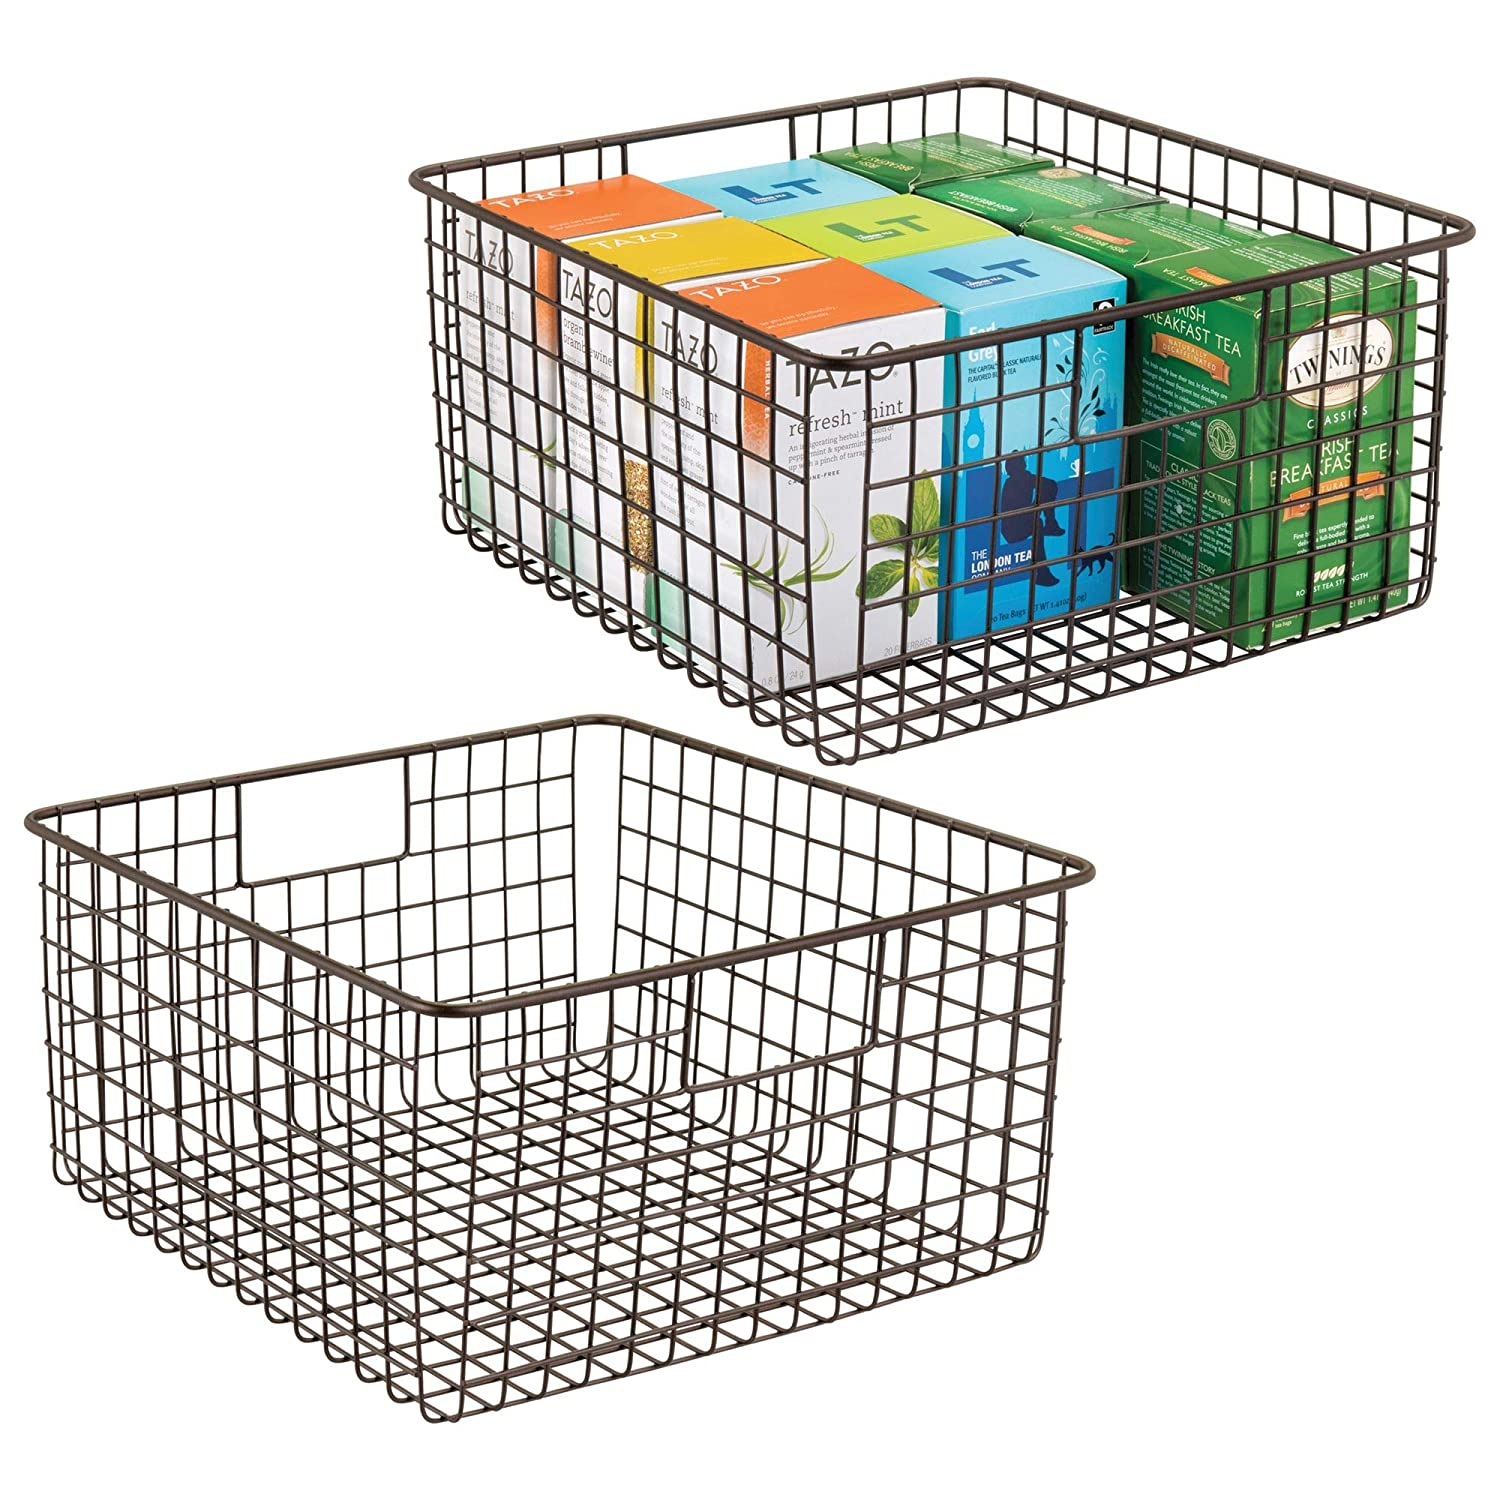 "mDesign Farmhouse Decor Metal Wire Food Storage Organizer, Bin Basket with Handles for Kitchen Cabinets, Pantry, Bathroom, Laundry Room, Closets, Garage - 12"" x 12"" x 6"" - 2 Pack - Bronze"